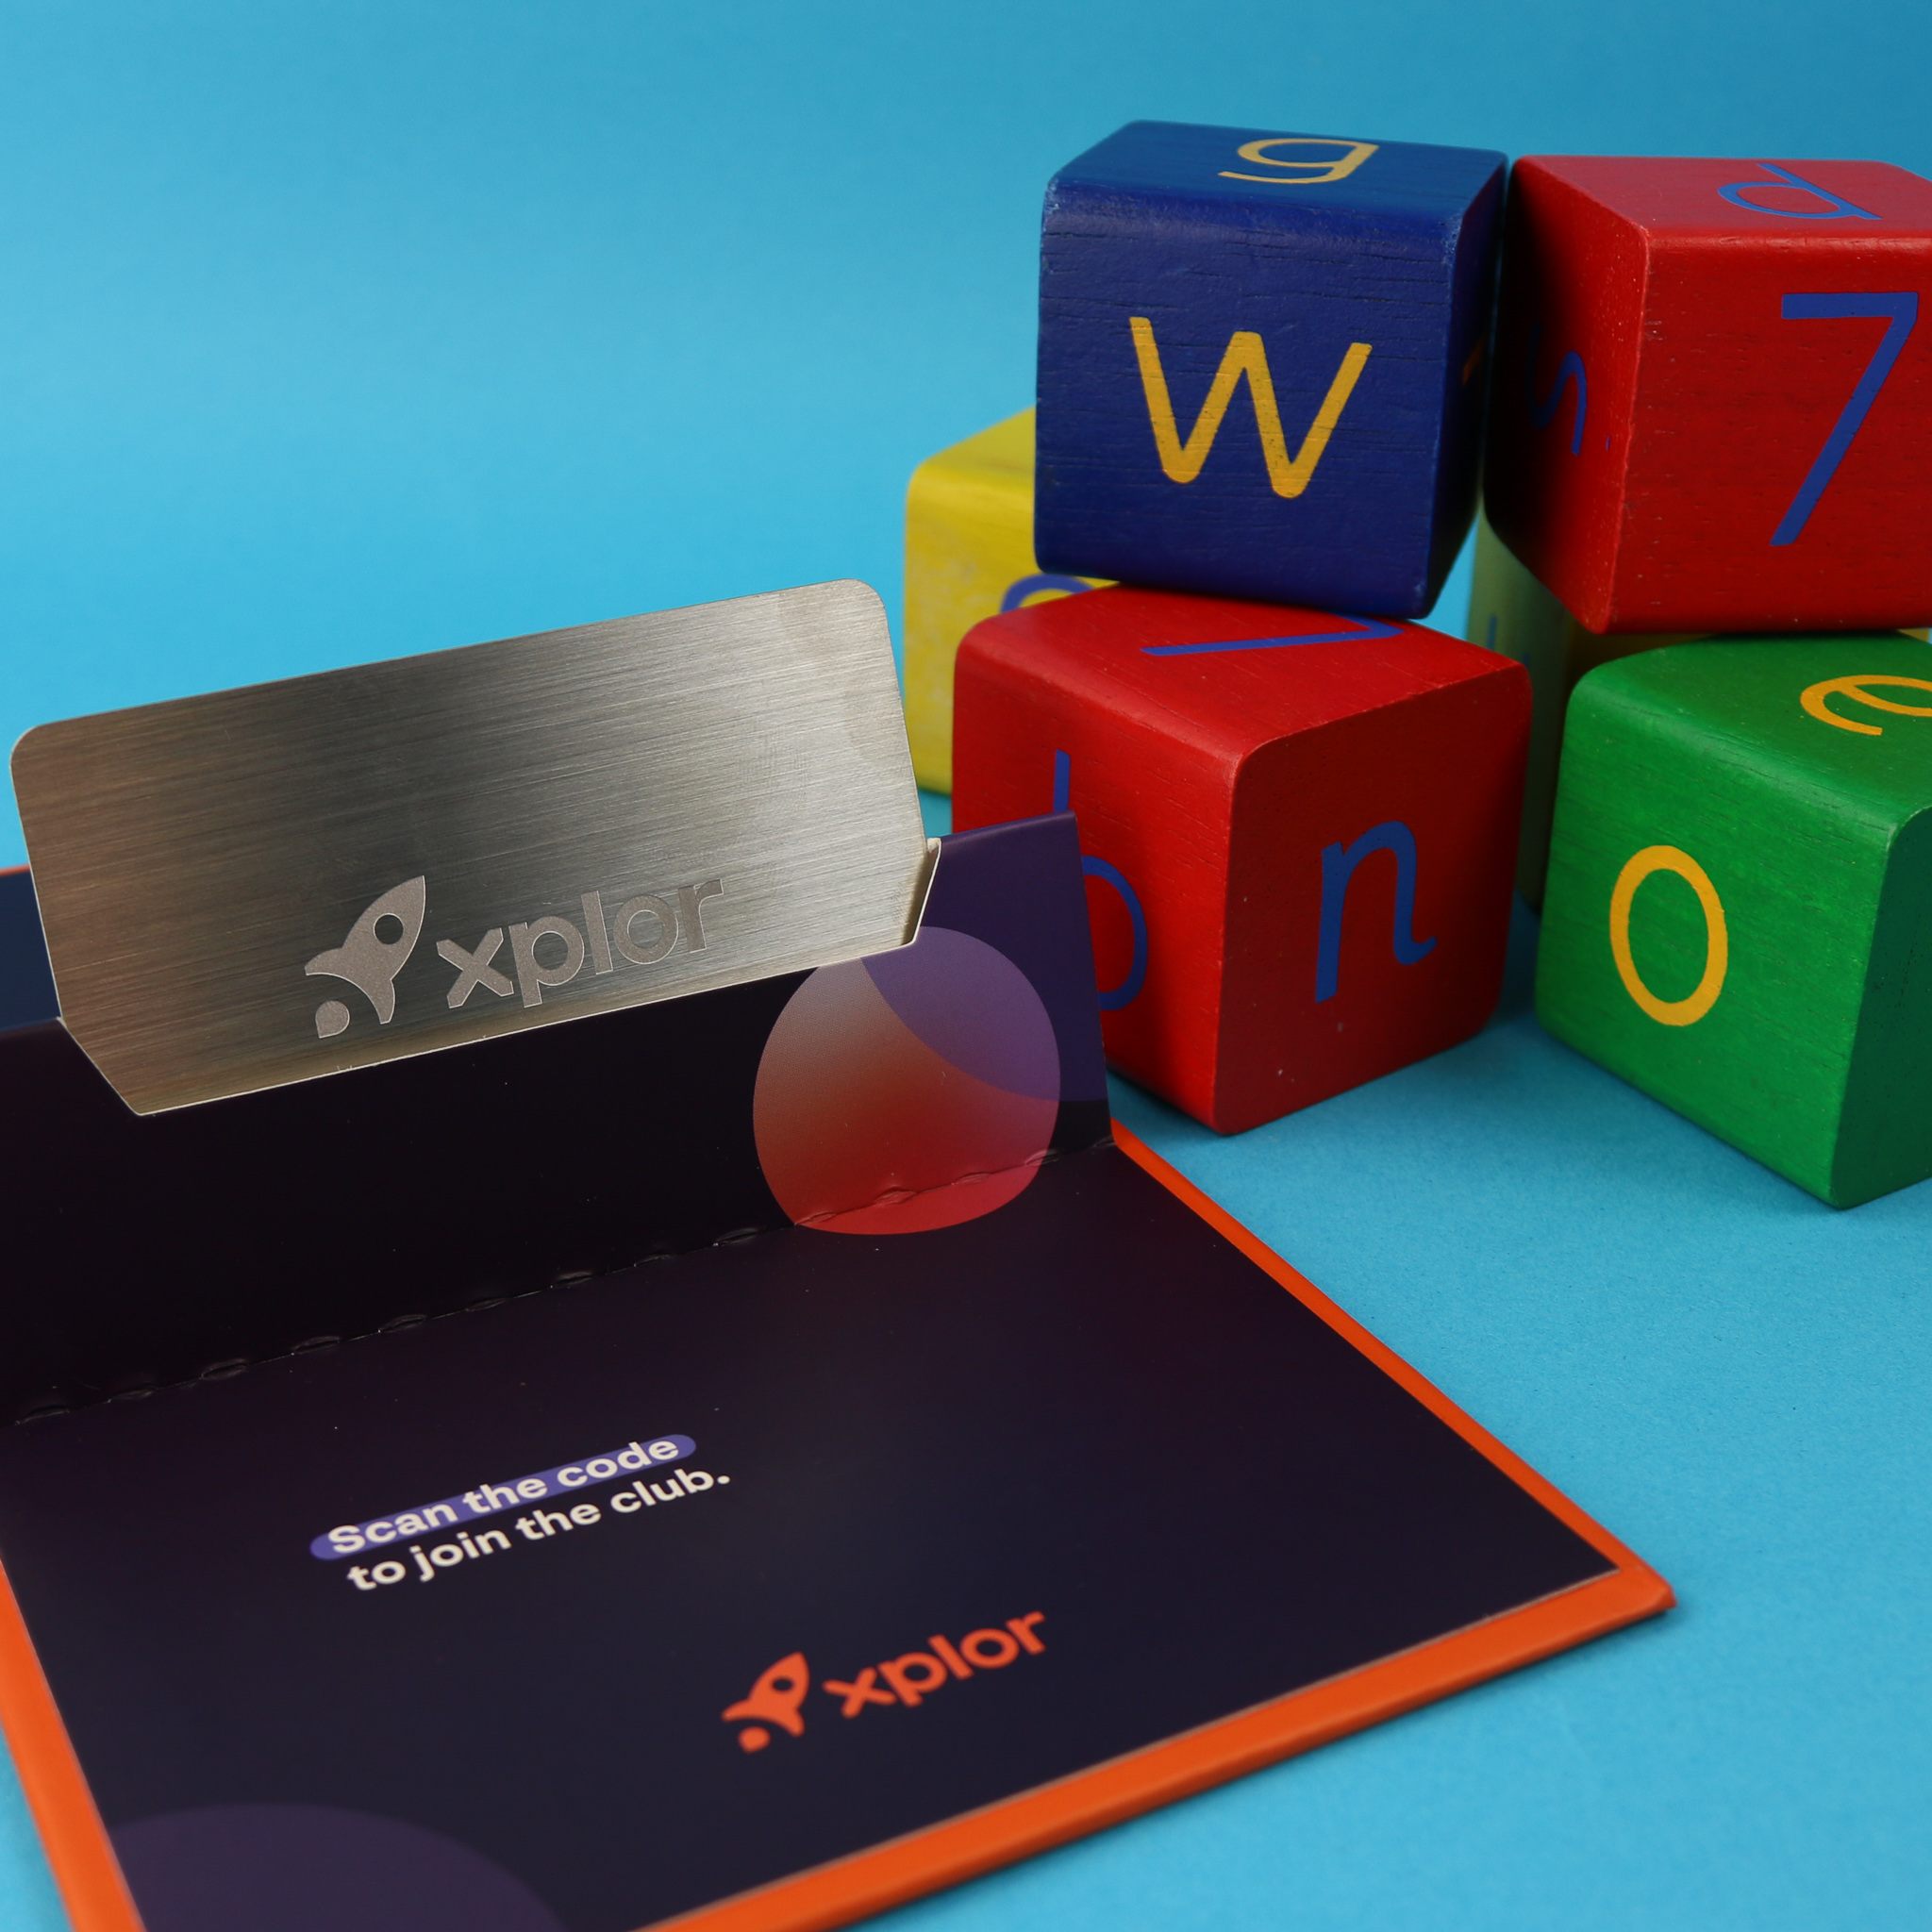 Metal membership cards with holder